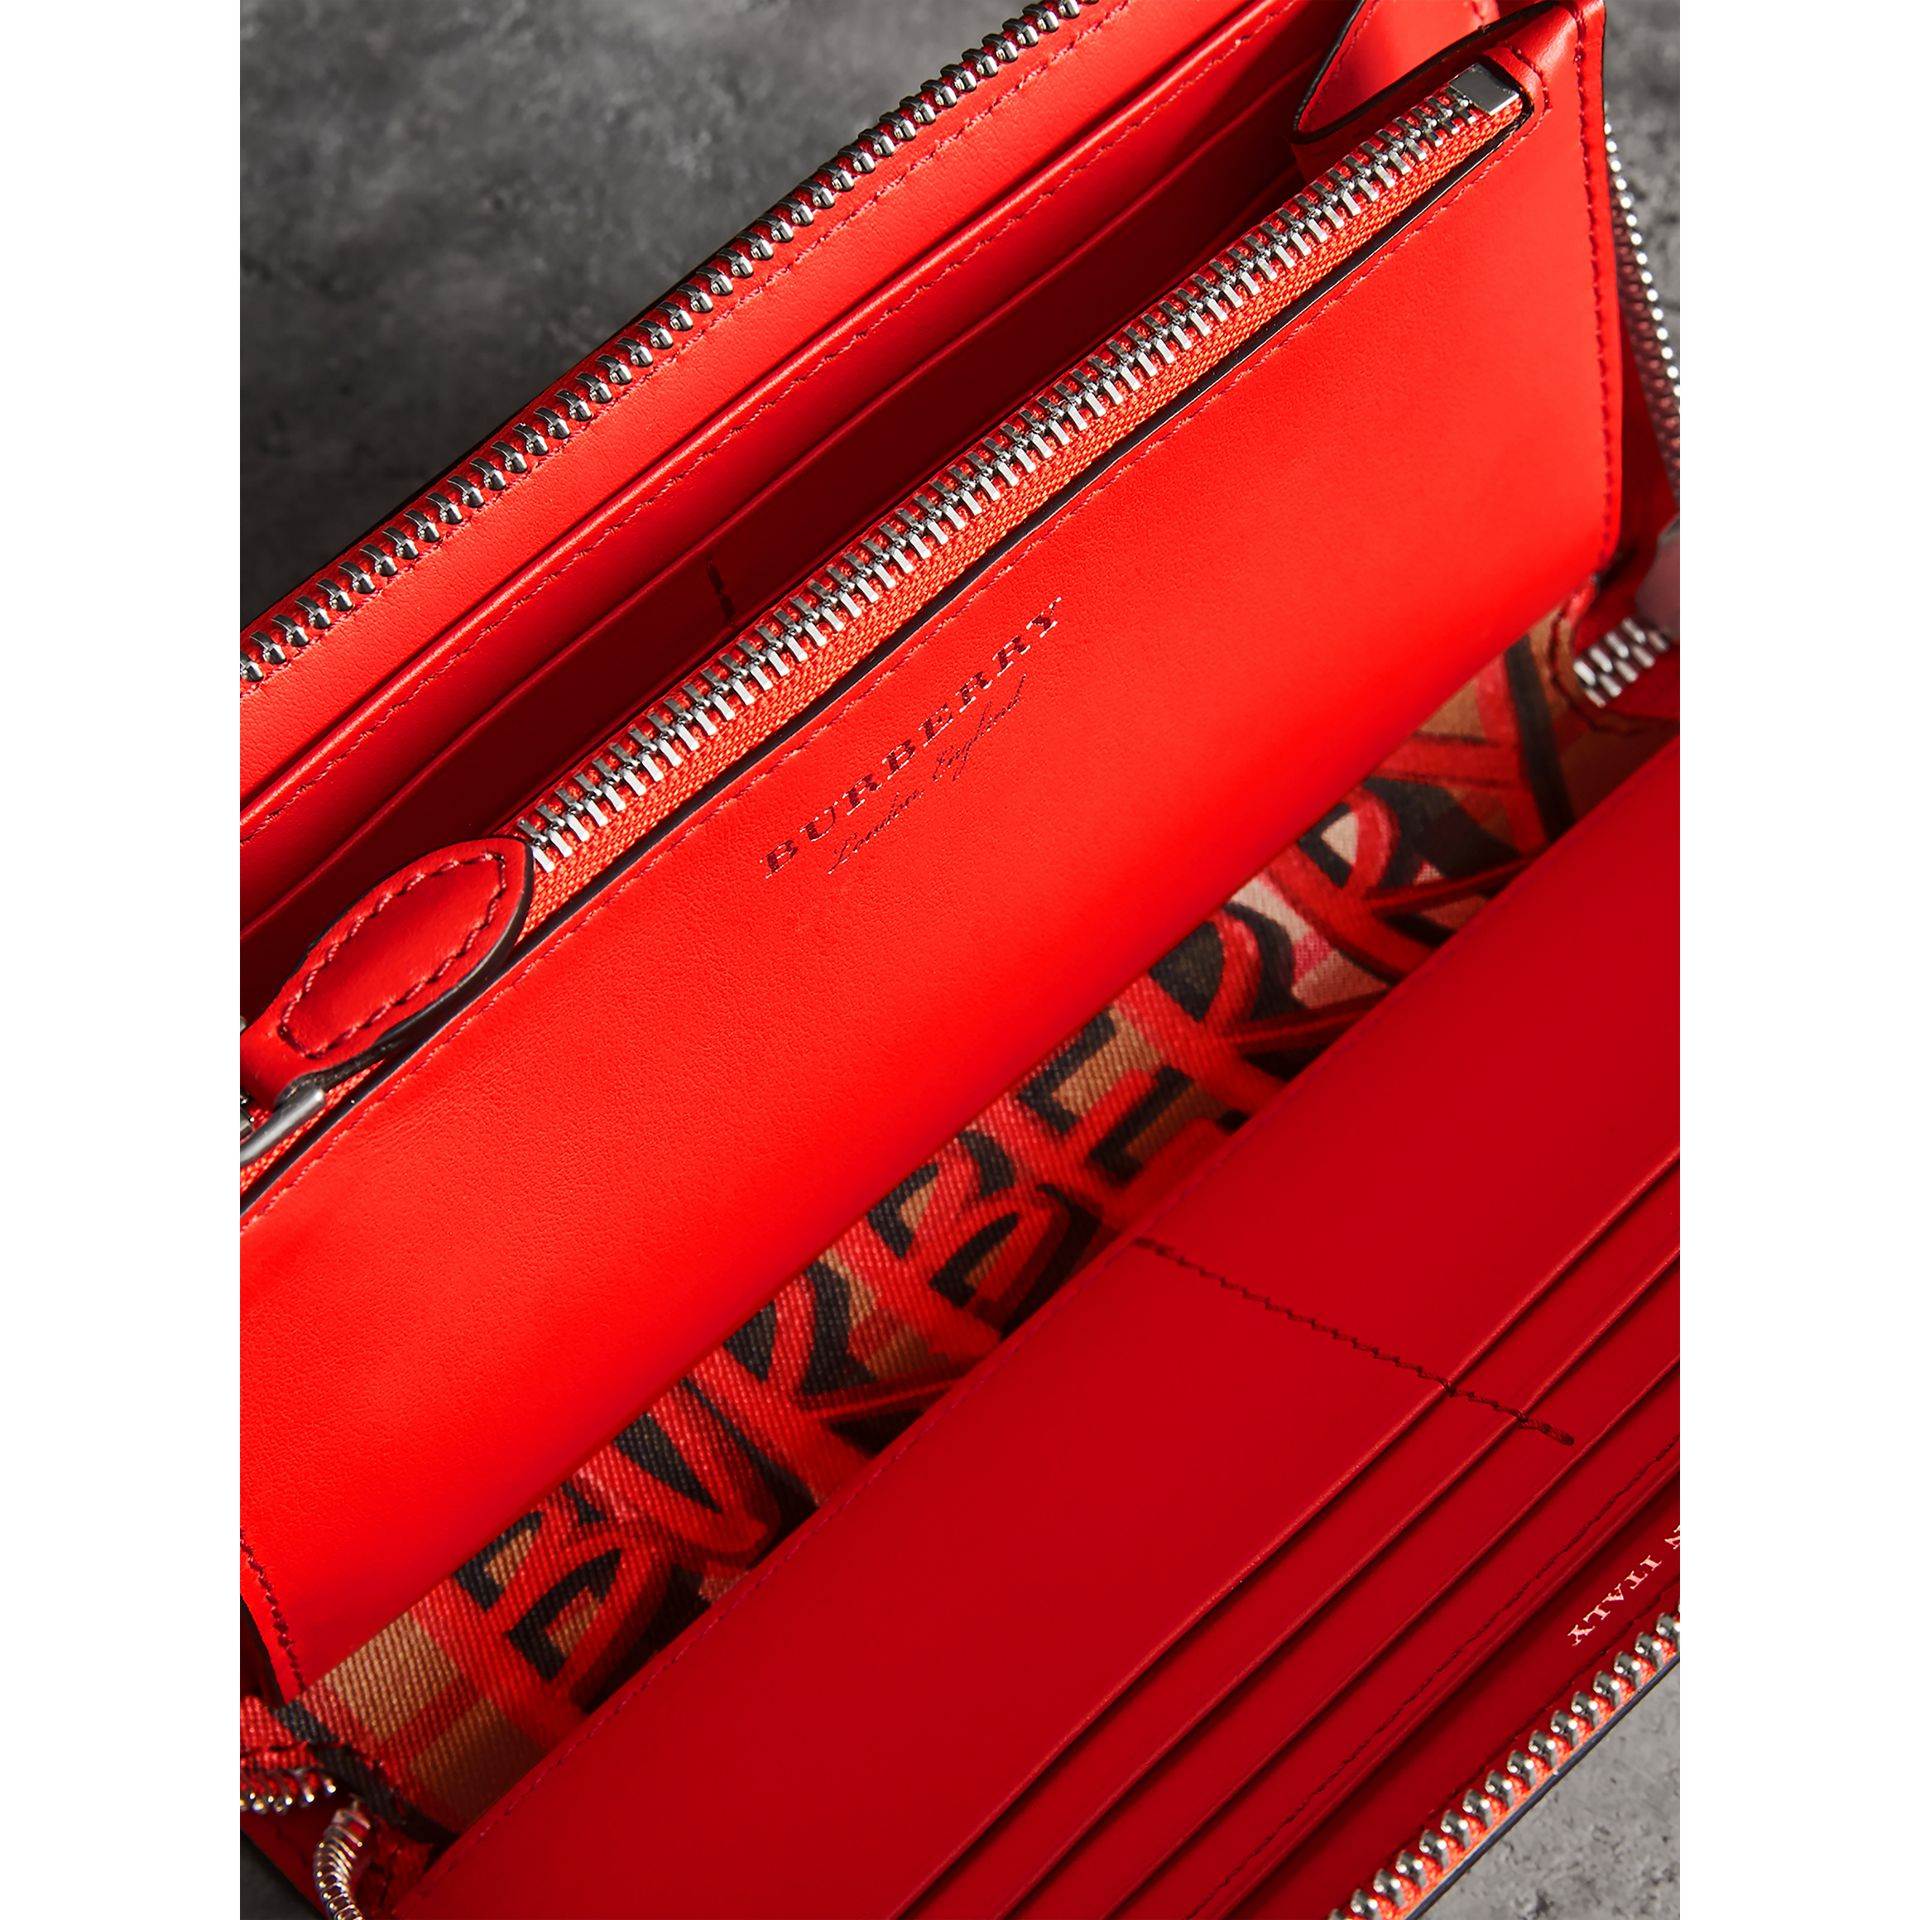 Graffiti Print Vintage Check Leather Ziparound Wallet in Red - Women | Burberry United Kingdom - gallery image 3